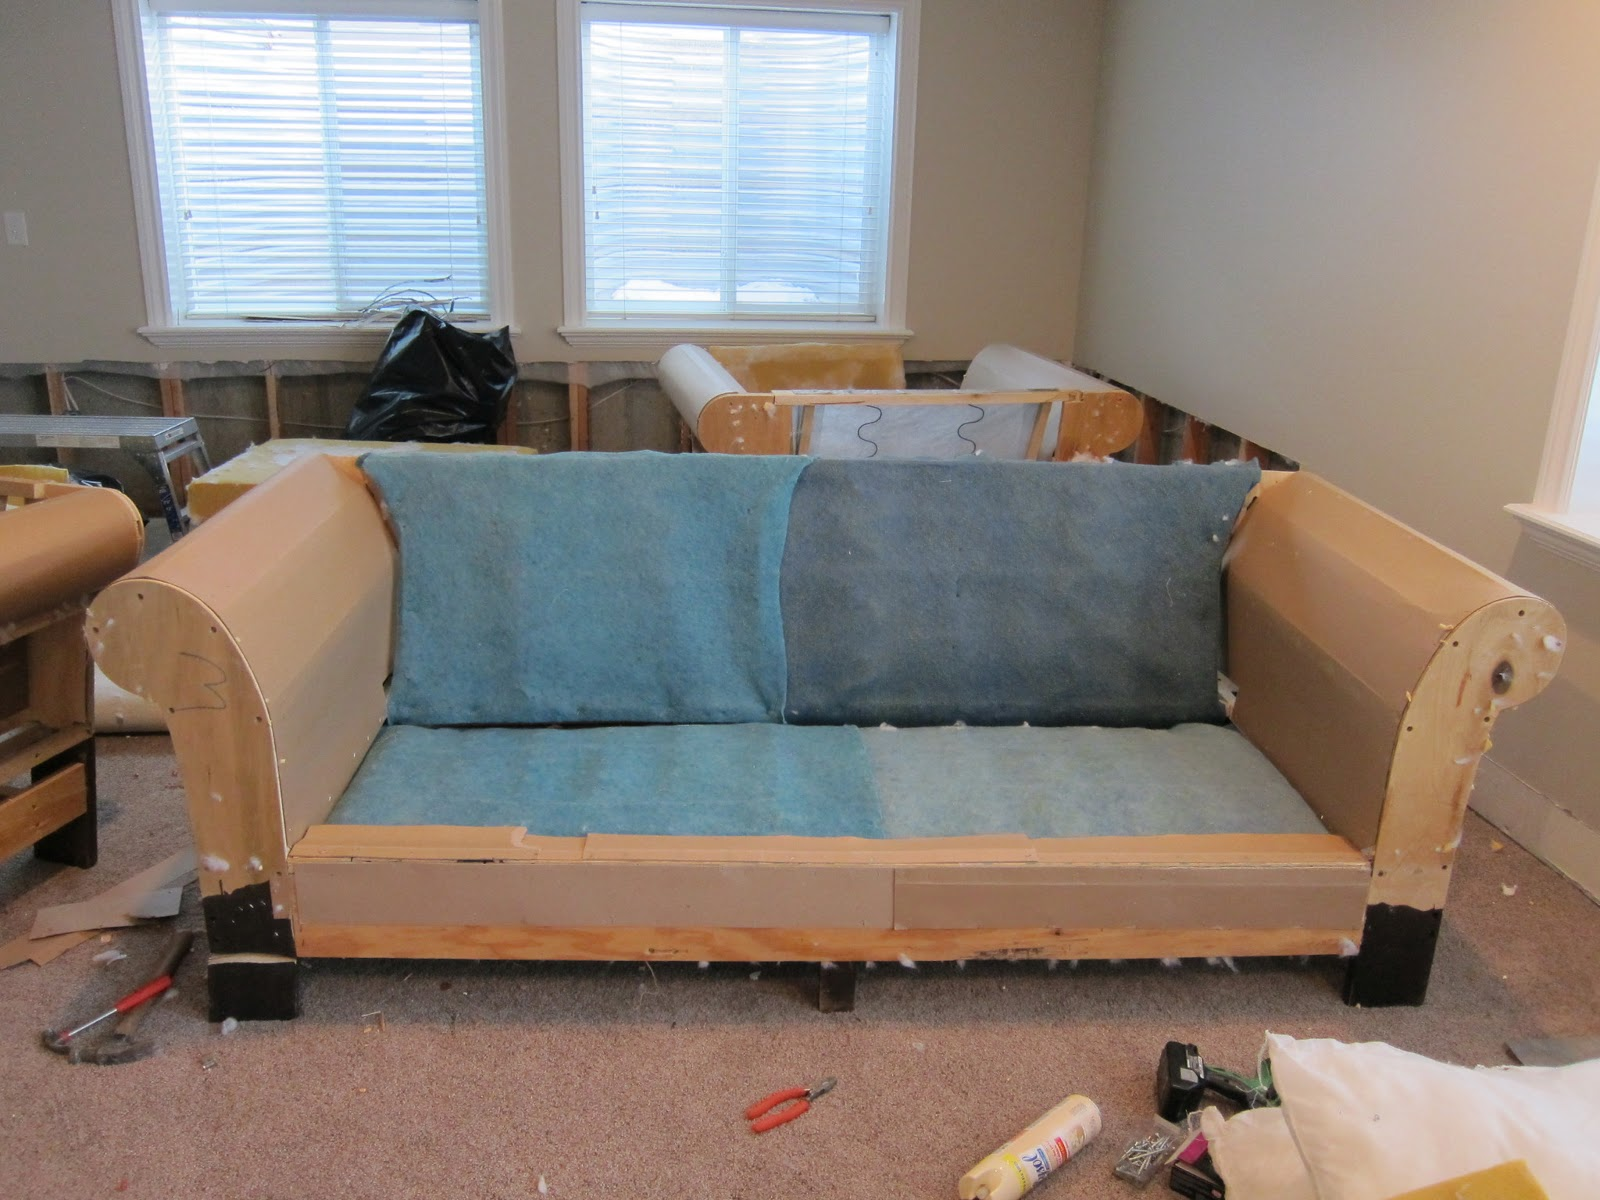 Sofa Foam Meaning Do It Yourself Divas Diy Strip Fabric From A Couch And Reupholster It